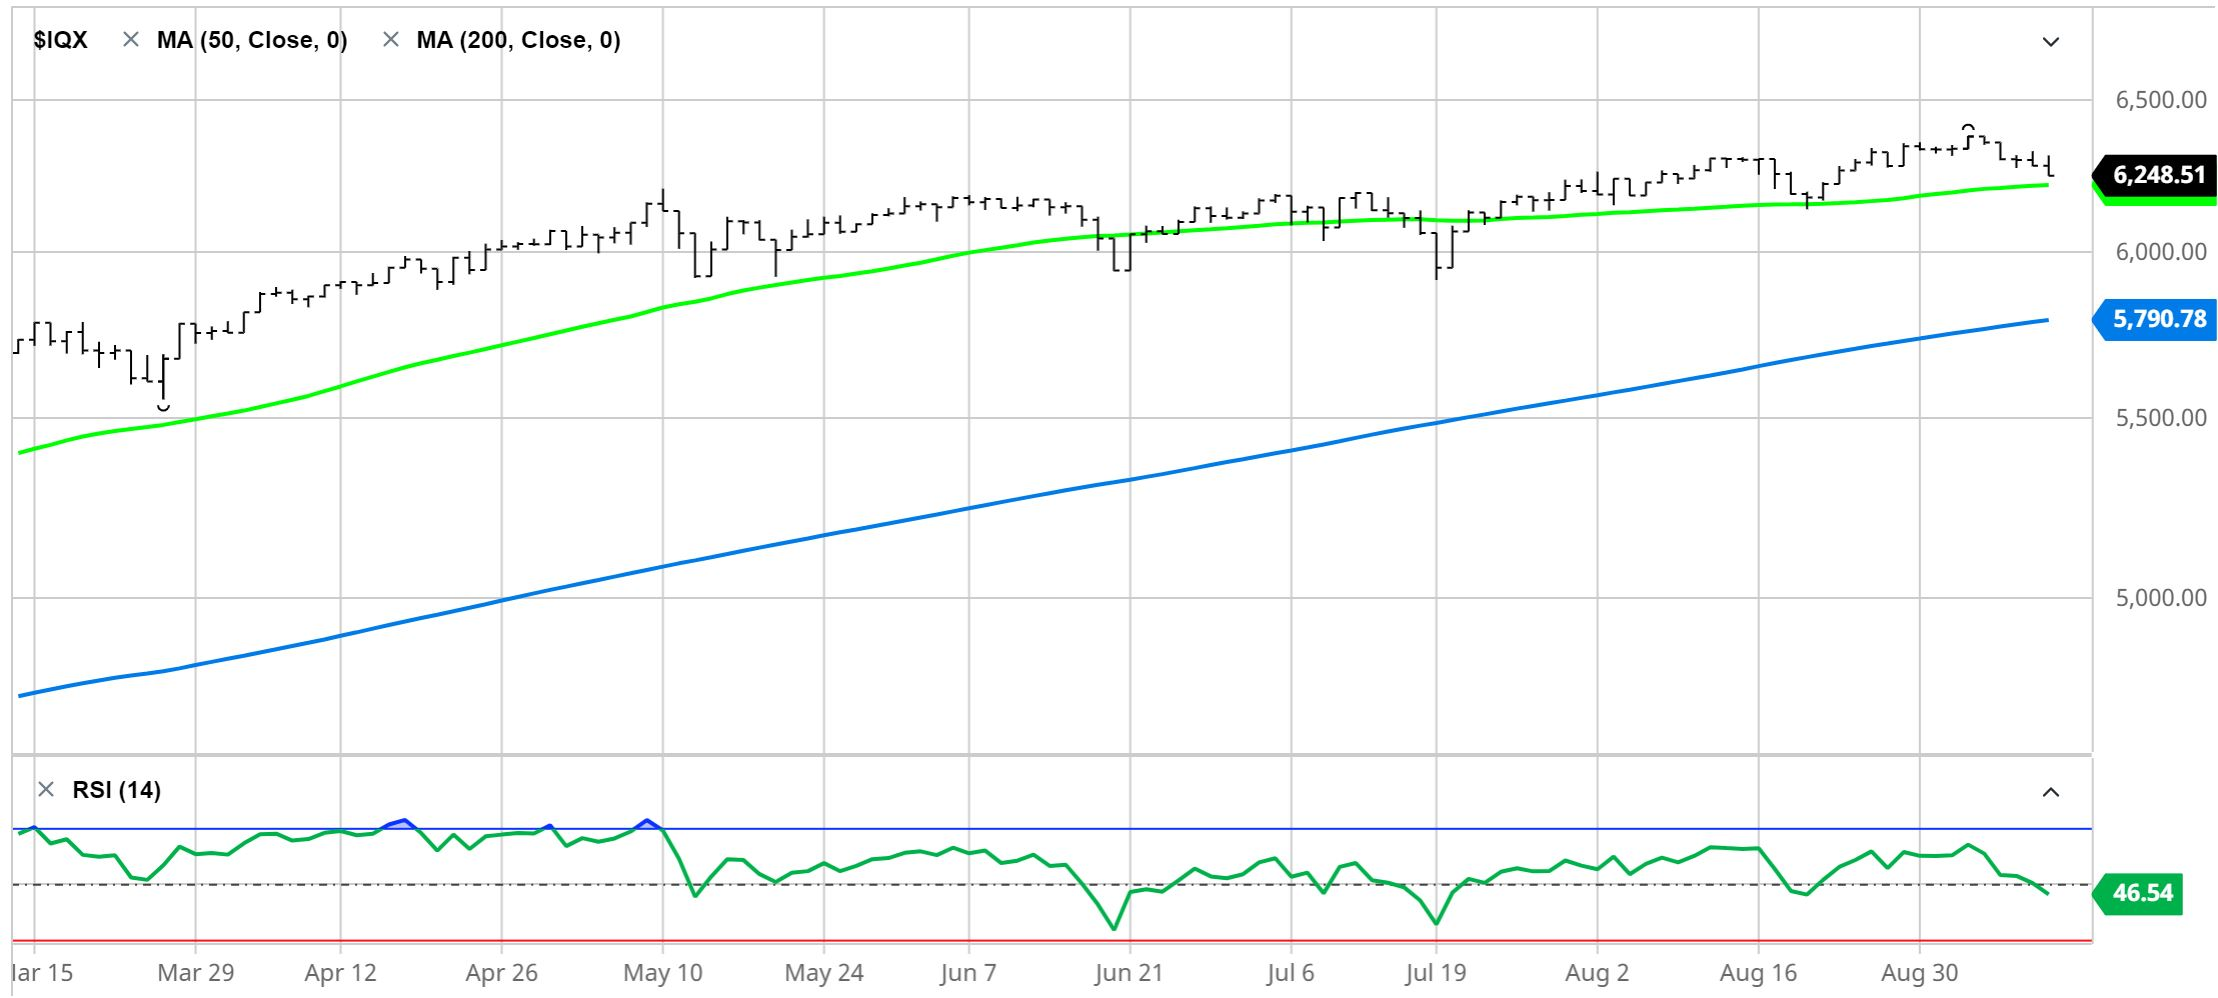 S&P 500 Equal Weighted Price Chart